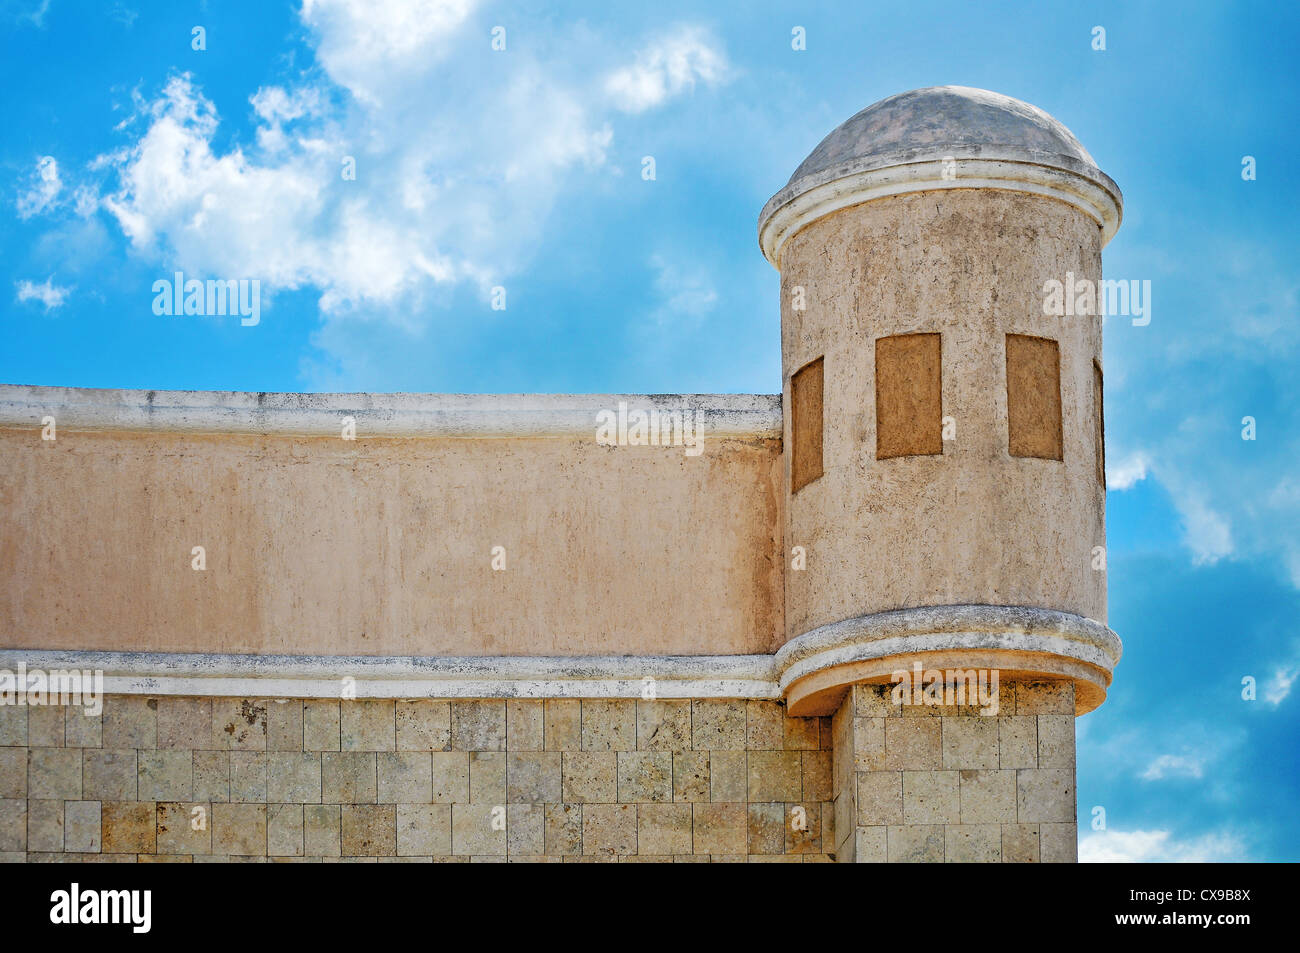 Old white wall and tower in Progresso - Mexico - Stock Image